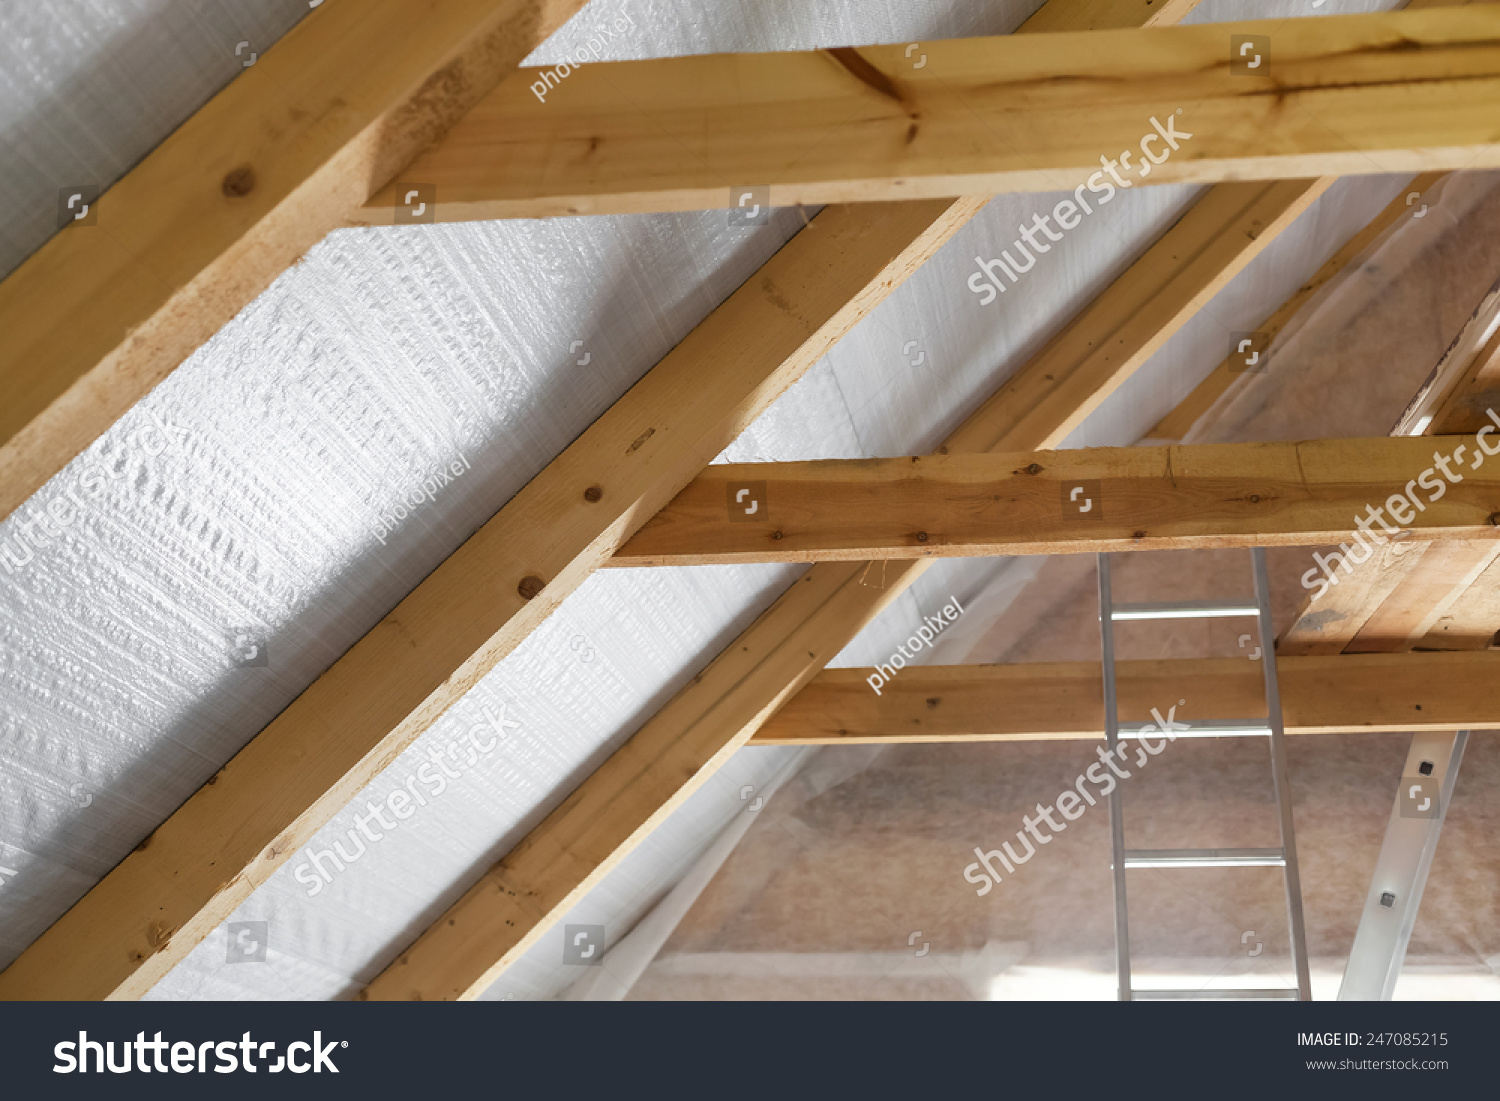 Wandisolierung Innen Inside Wall Insulation In Wooden House Building Under